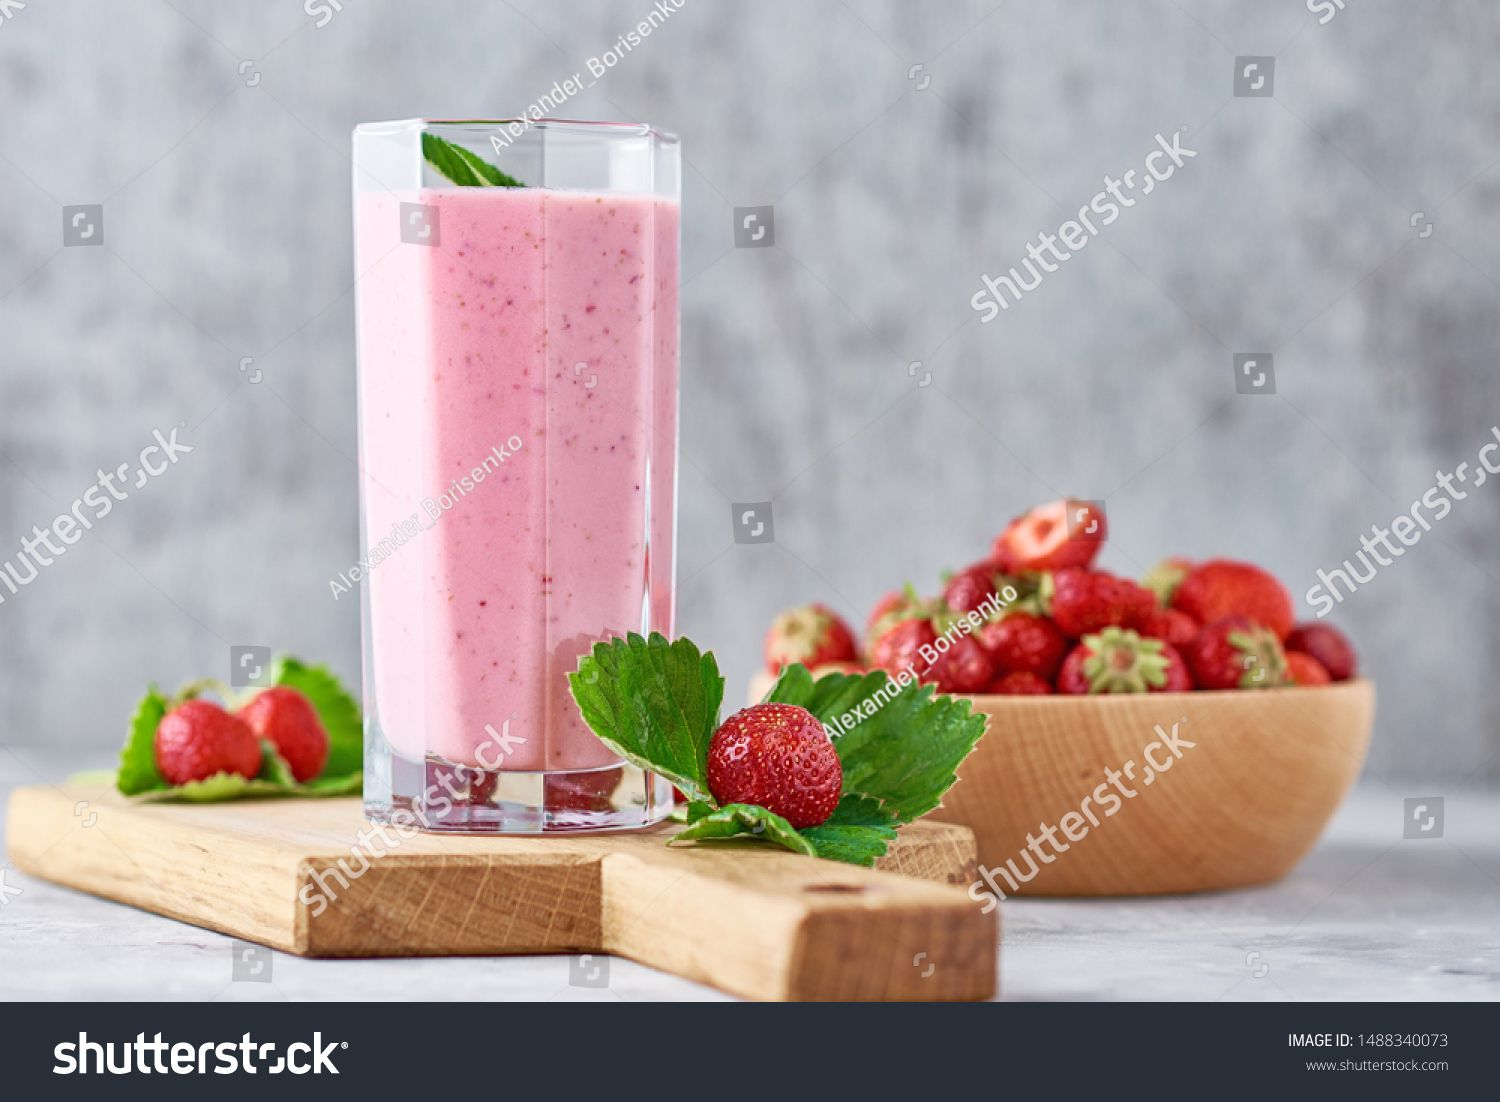 Strawberry smoothie in glass jar and fresh strawberries in wooden bowl on cutting board #Sponsored , #AD, #jar#fresh#glass#Strawberry